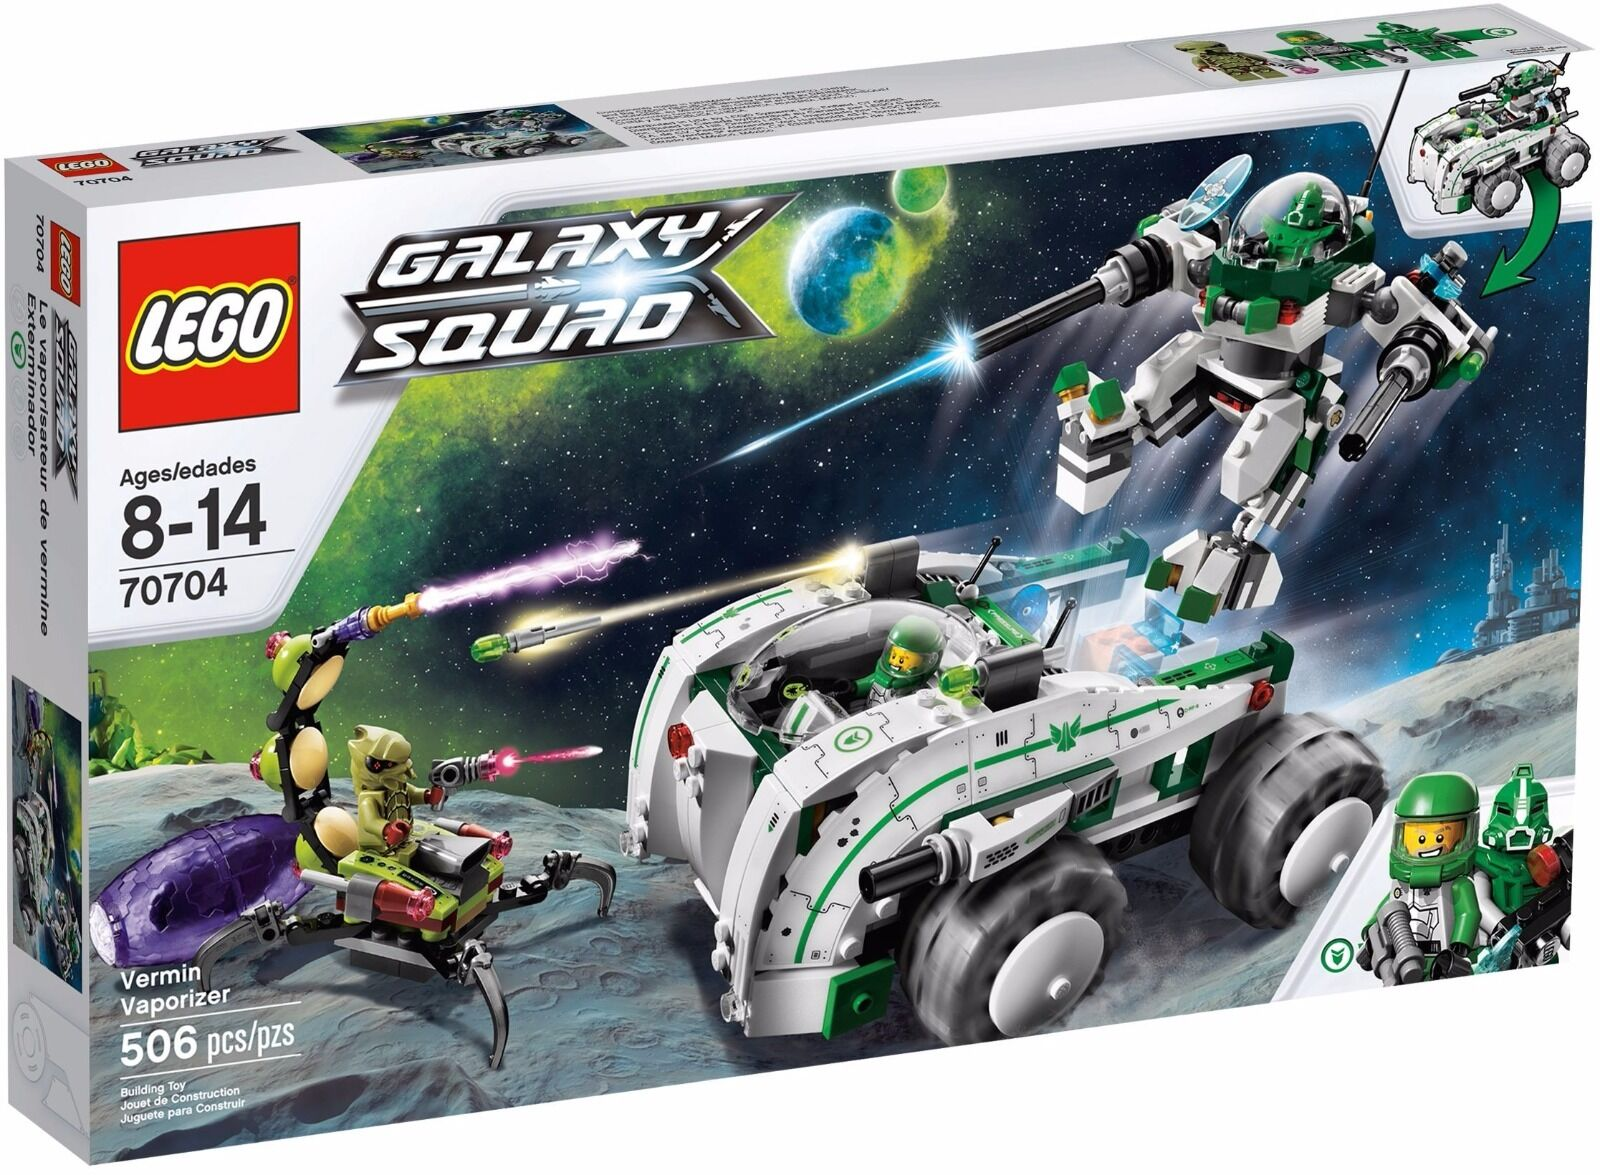 Lego Galaxy Vermin Vaporizer Retired Rarenew Squad 2013very